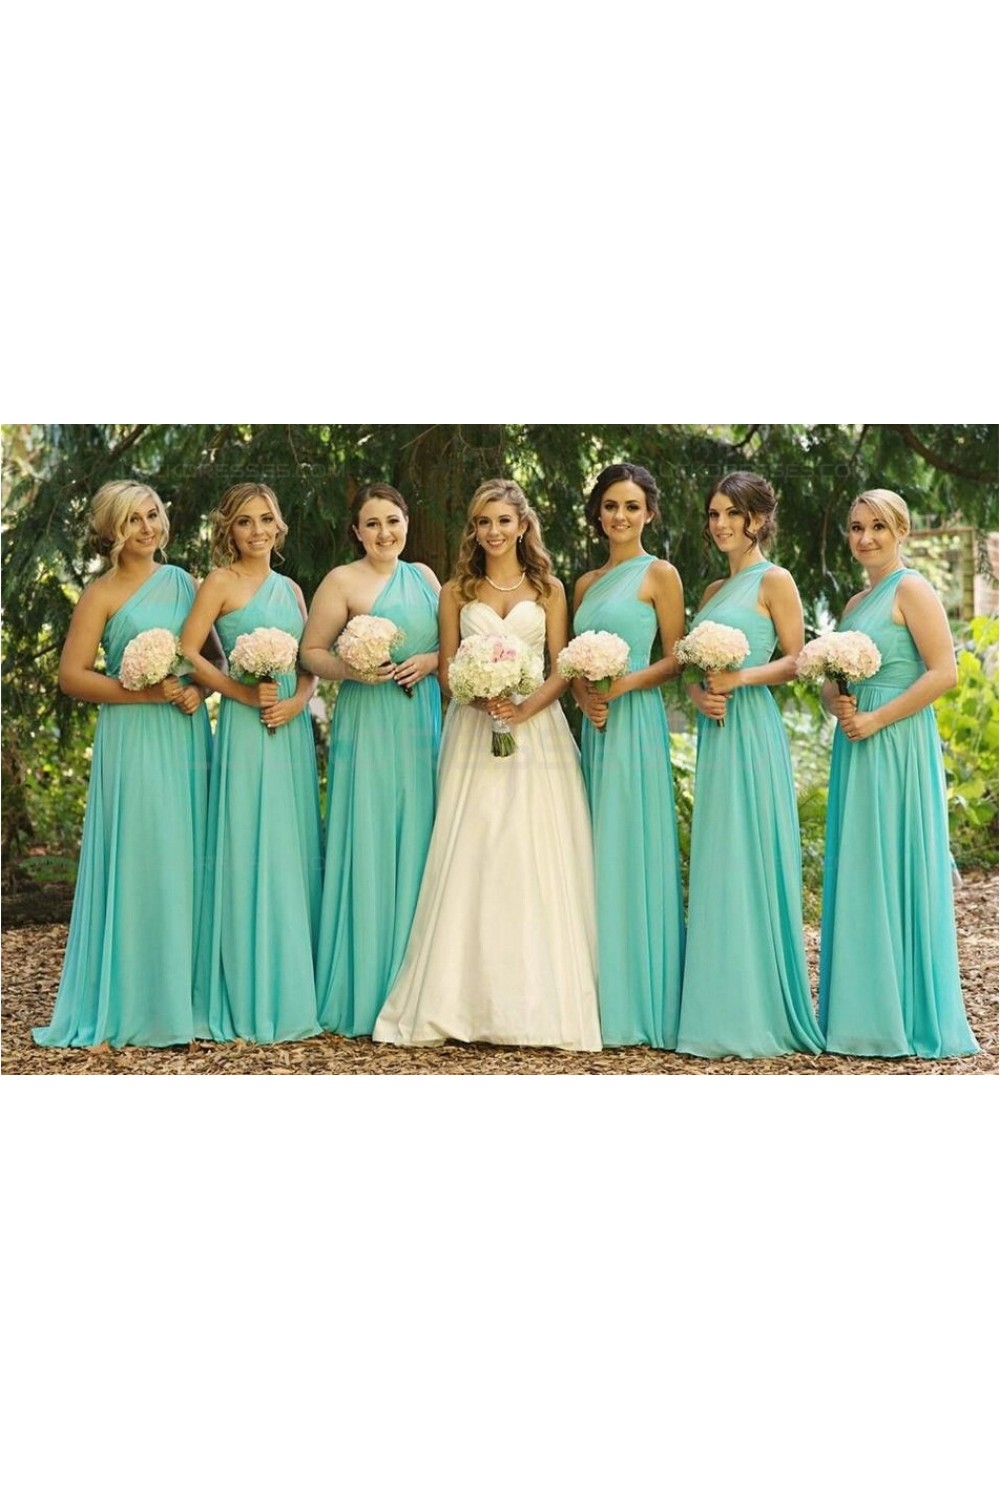 Mint Green OneShoulder Long Chiffon Wedding Guest Dresses Bridesmaid Dresses 3010162